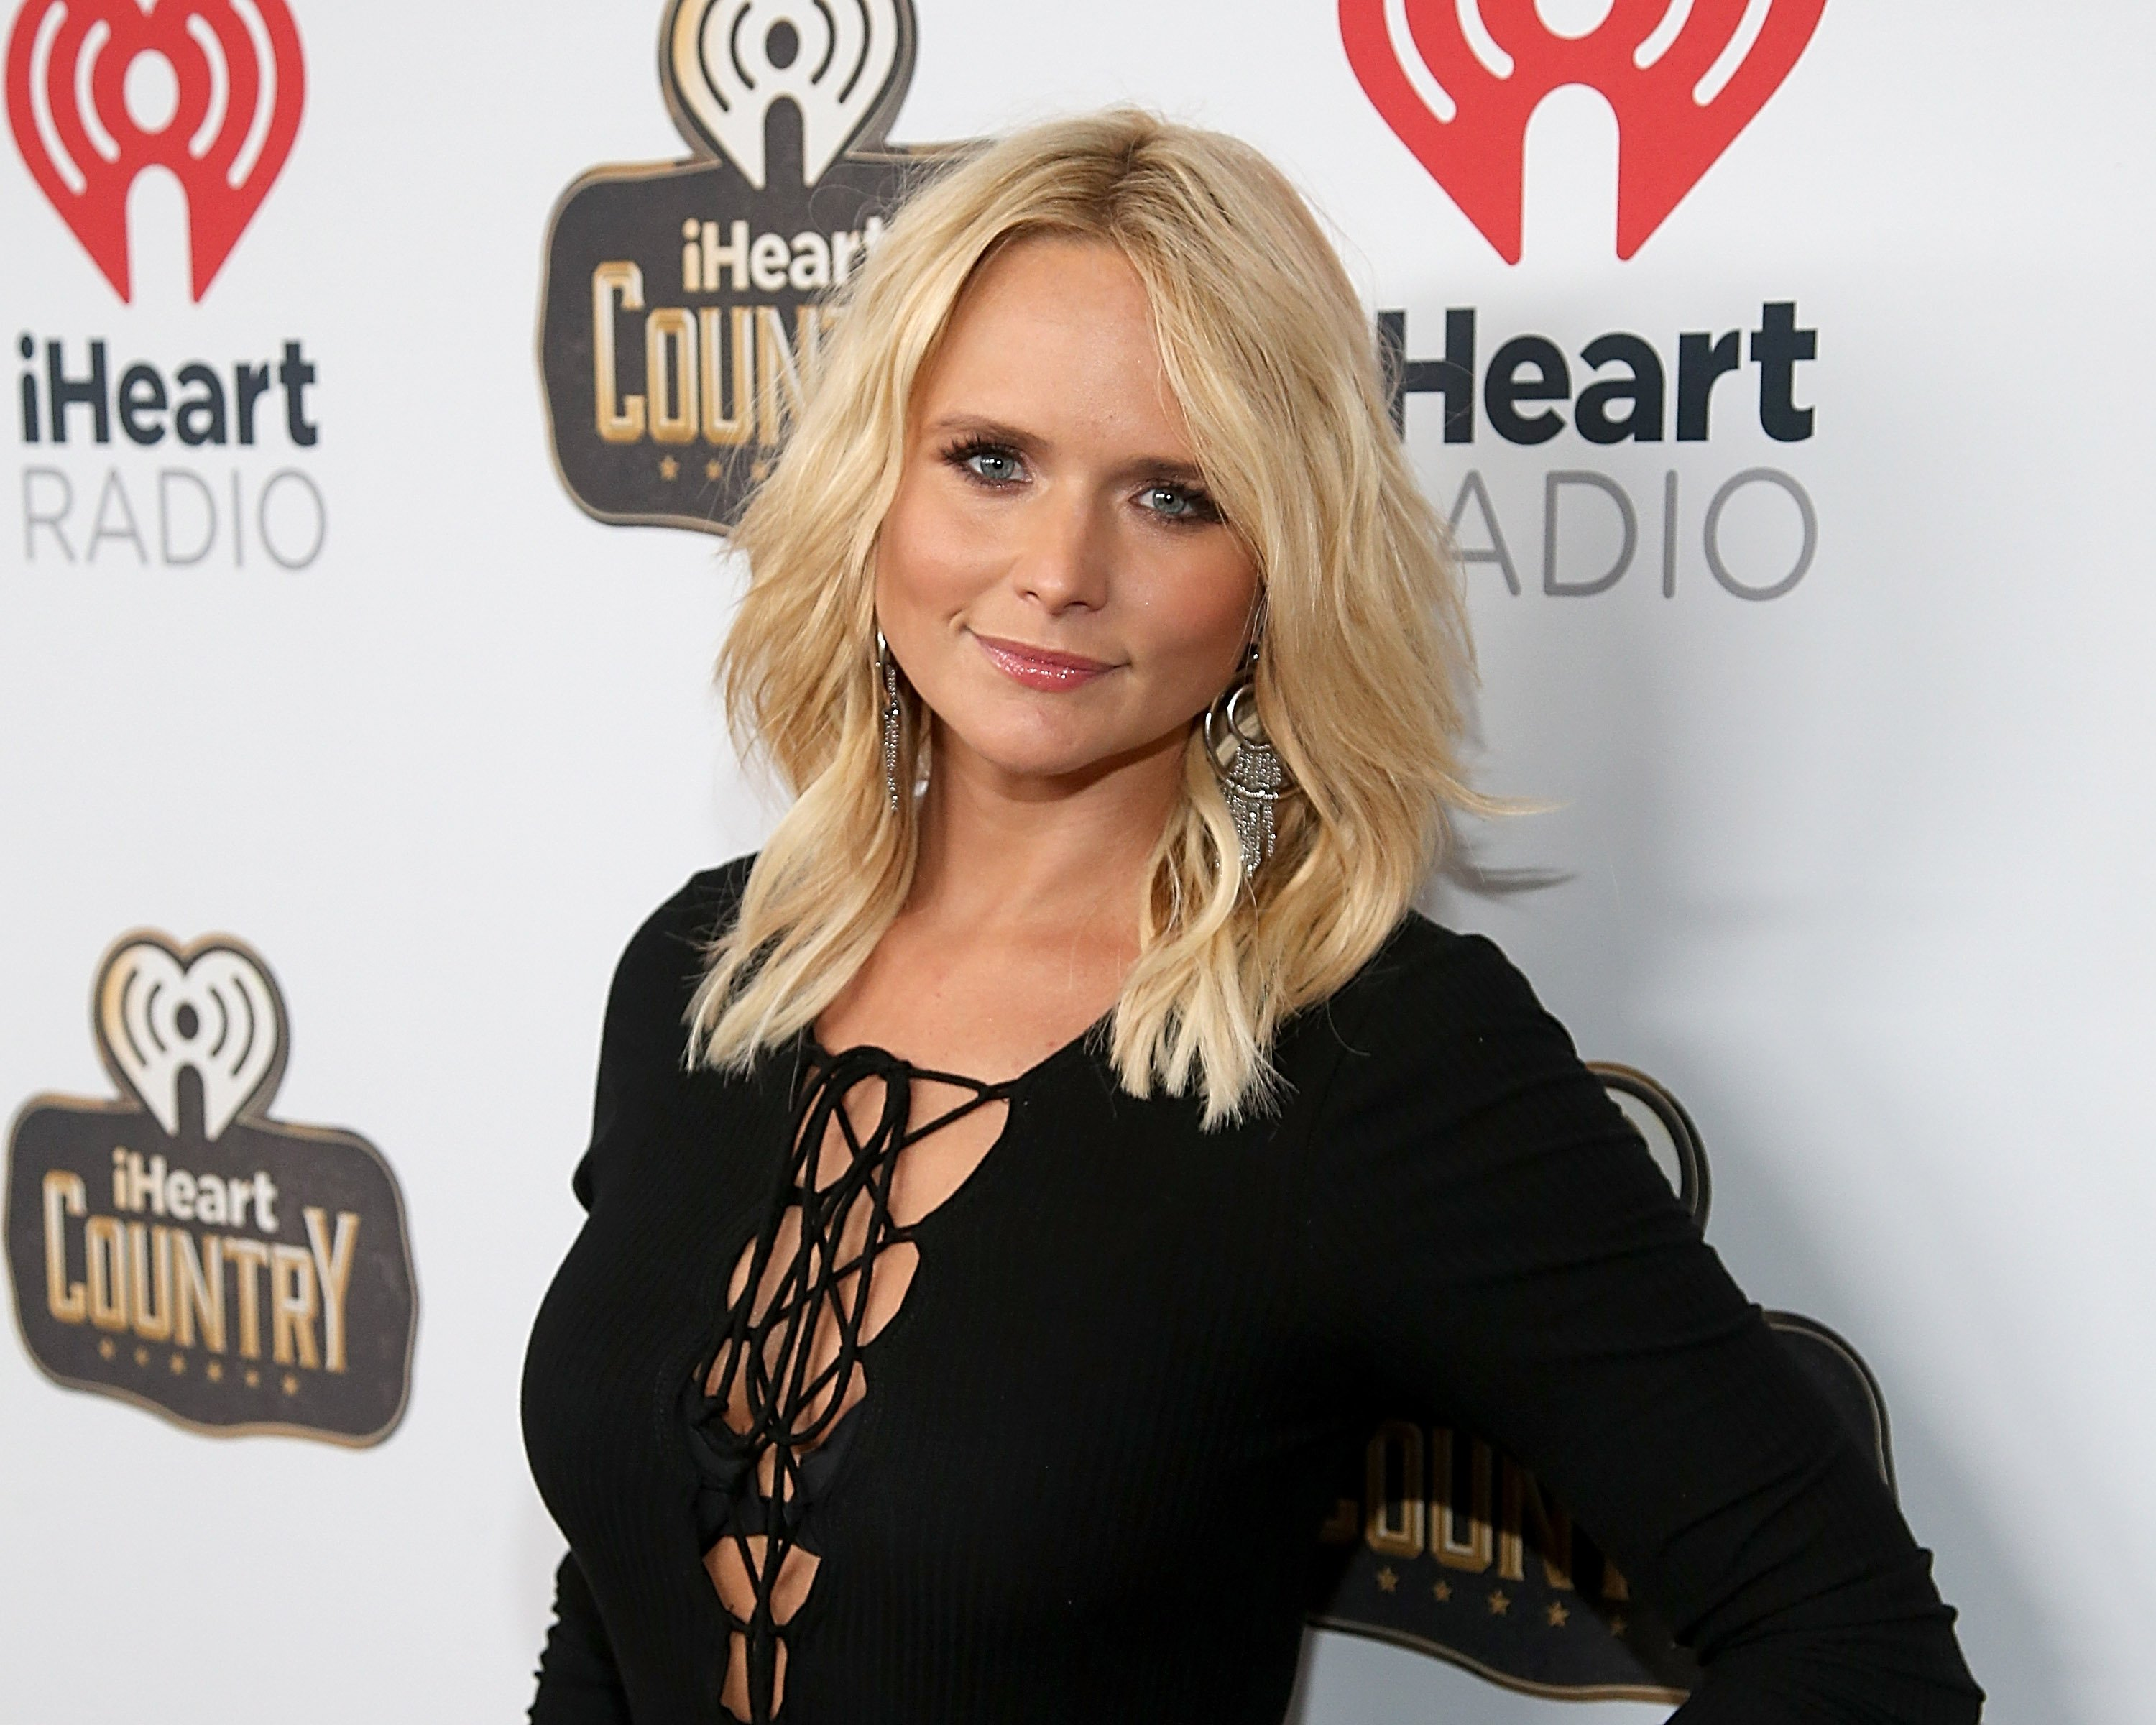 Miranda Lambert pictured at the iHeartCountry Festival at The Frank Erwin Center, 2016. | Photo: Getty Images